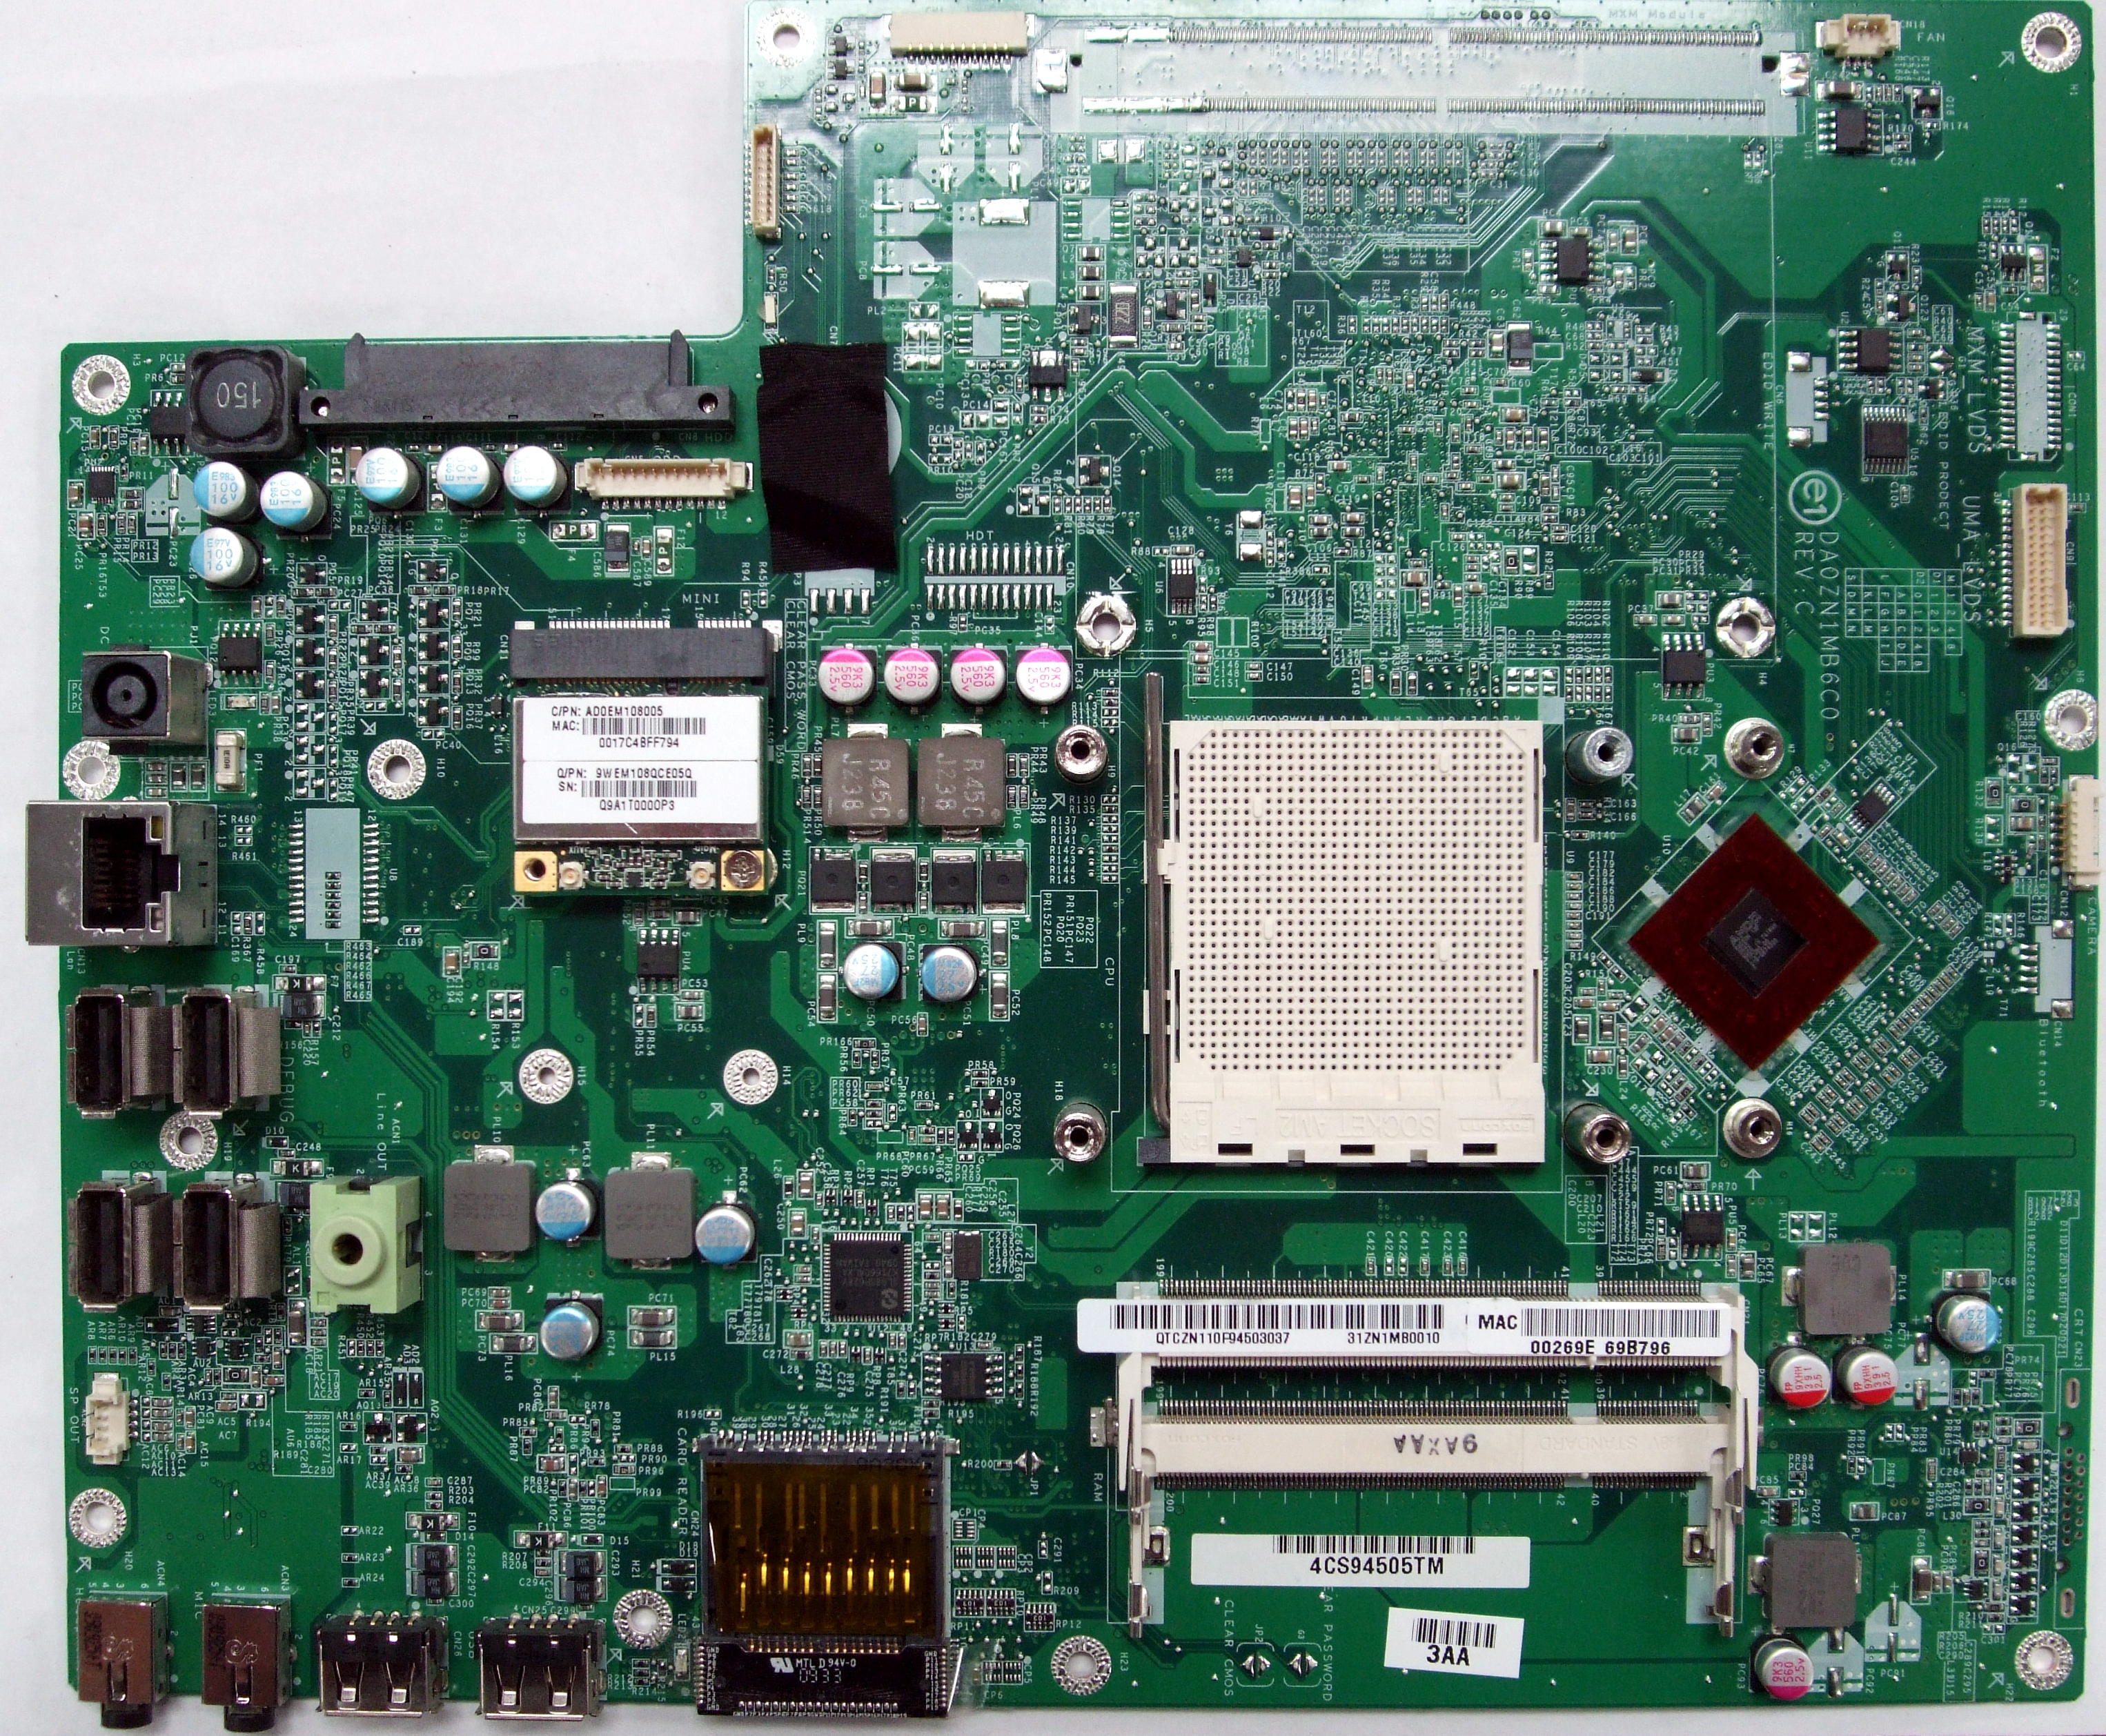 DA0ZN1MB6C0 31ZN1MB0010 HP Pavilion MS200 MS215uk PC Motherboard - HP 597920-001